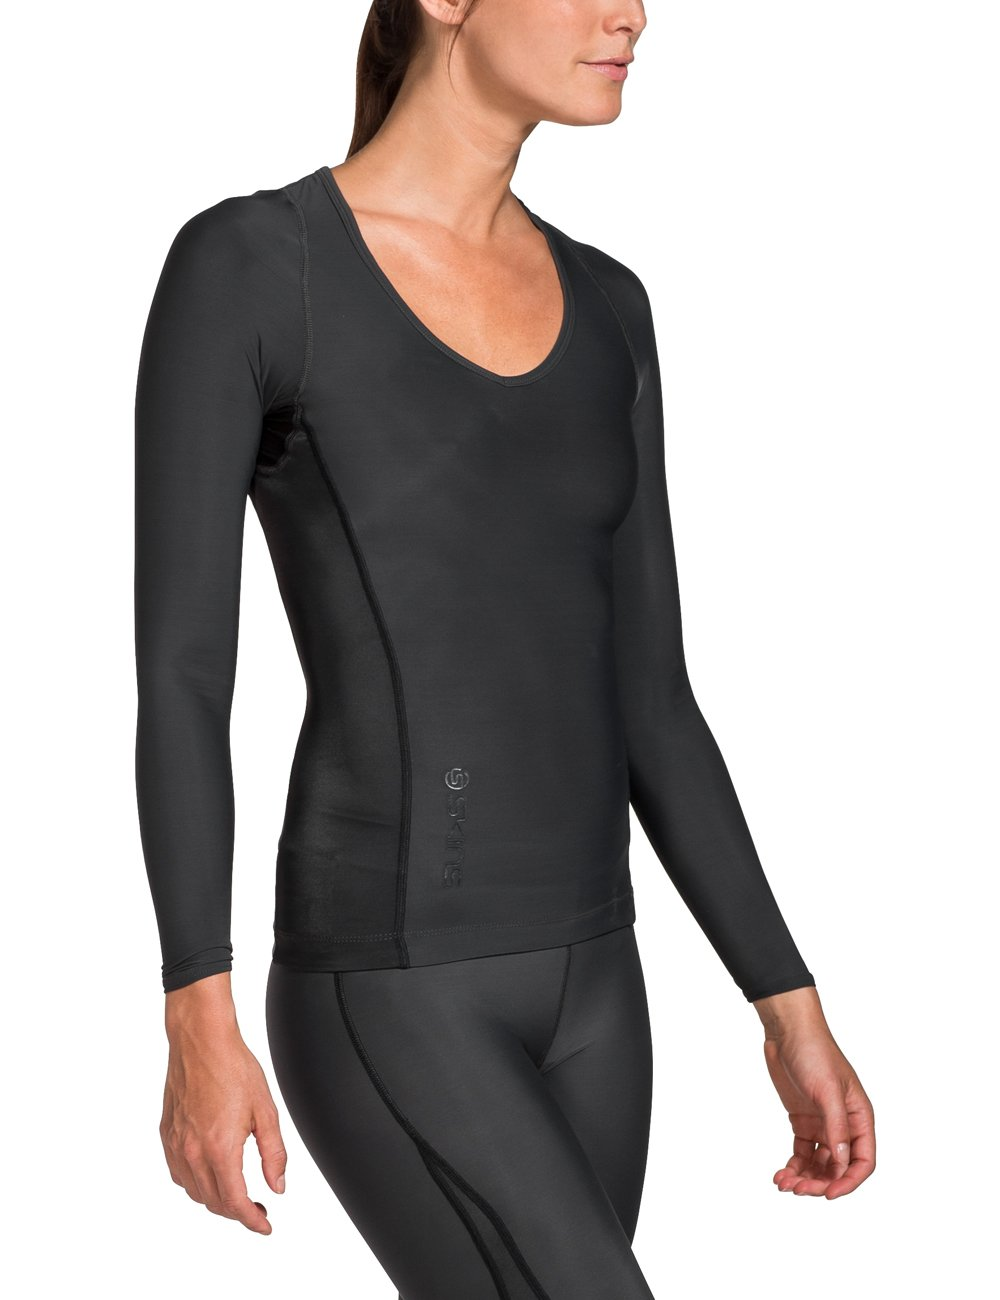 Skins Women's Ry400 Recovery Long Sleeve Top, Black, SmallH by Skins (Image #3)